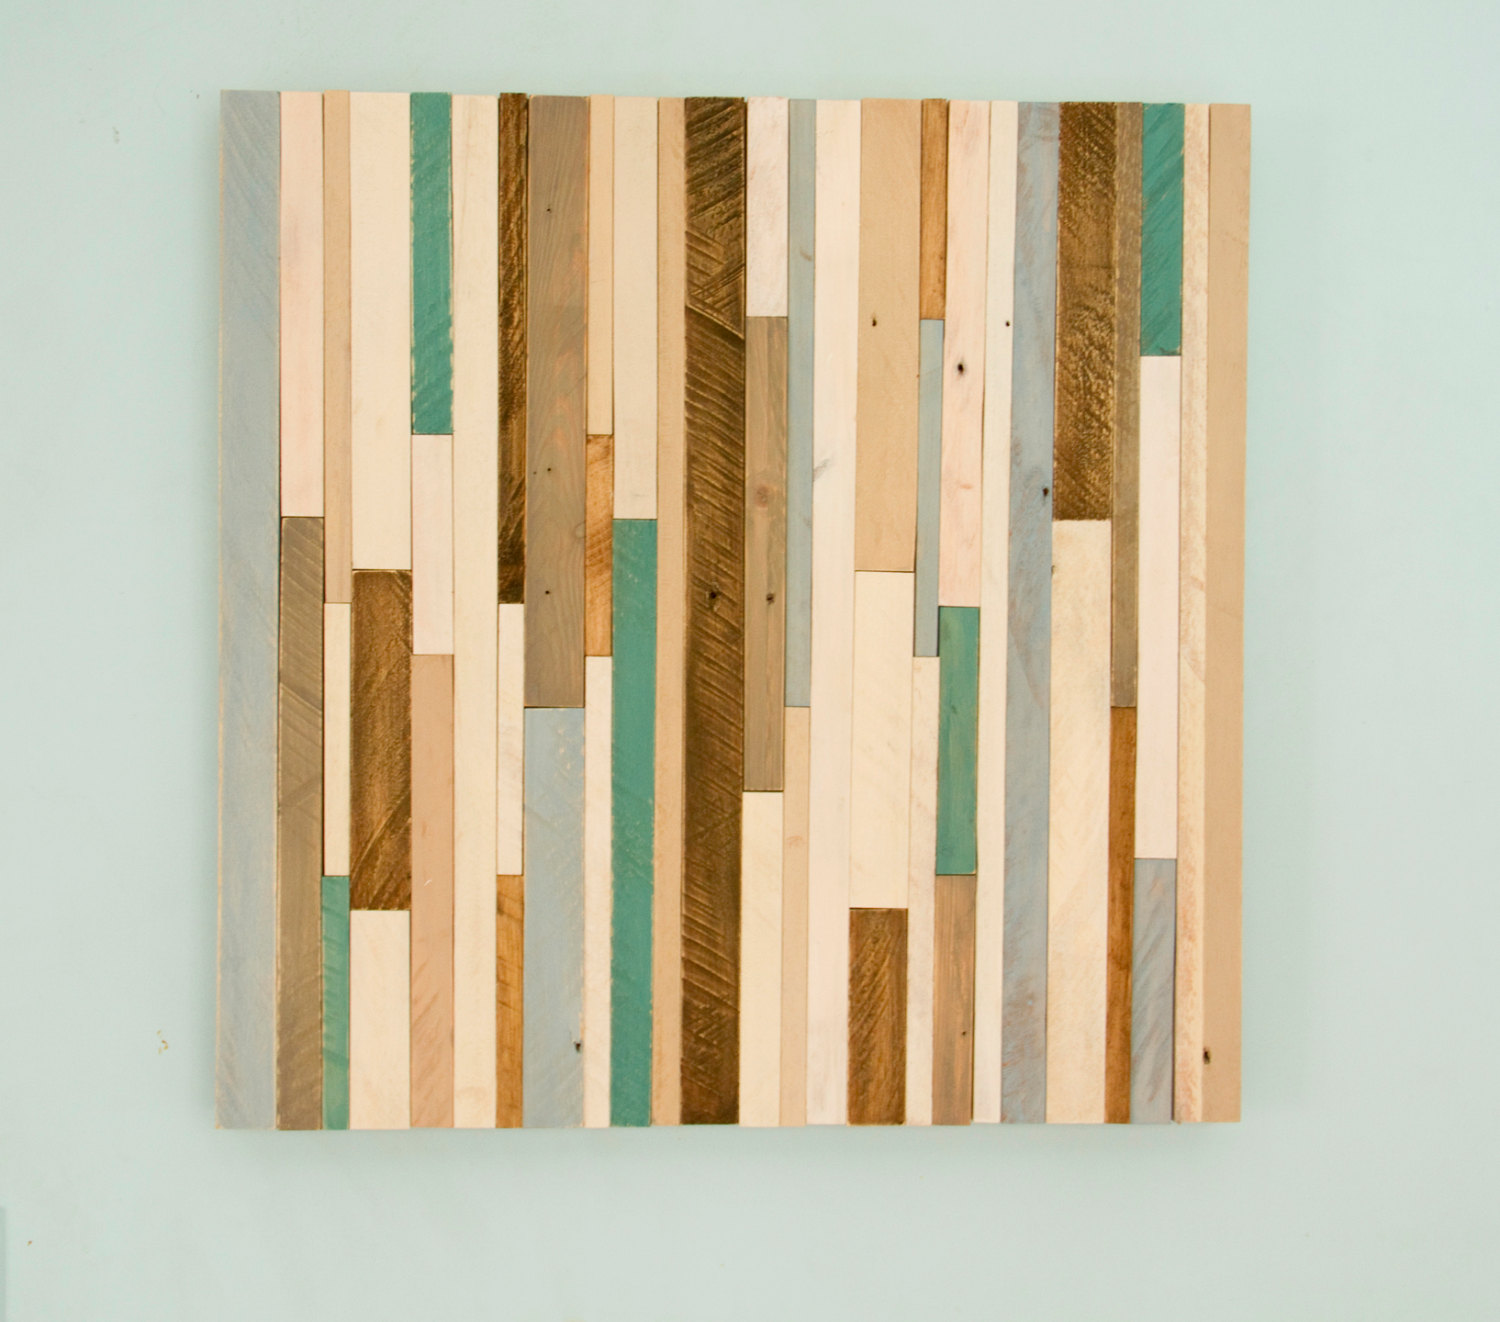 Rustic wood wall art reclaimed wood decor 20 x 20 reclaimed wood wall sculpture art glamour - Sculpture wall decor ...